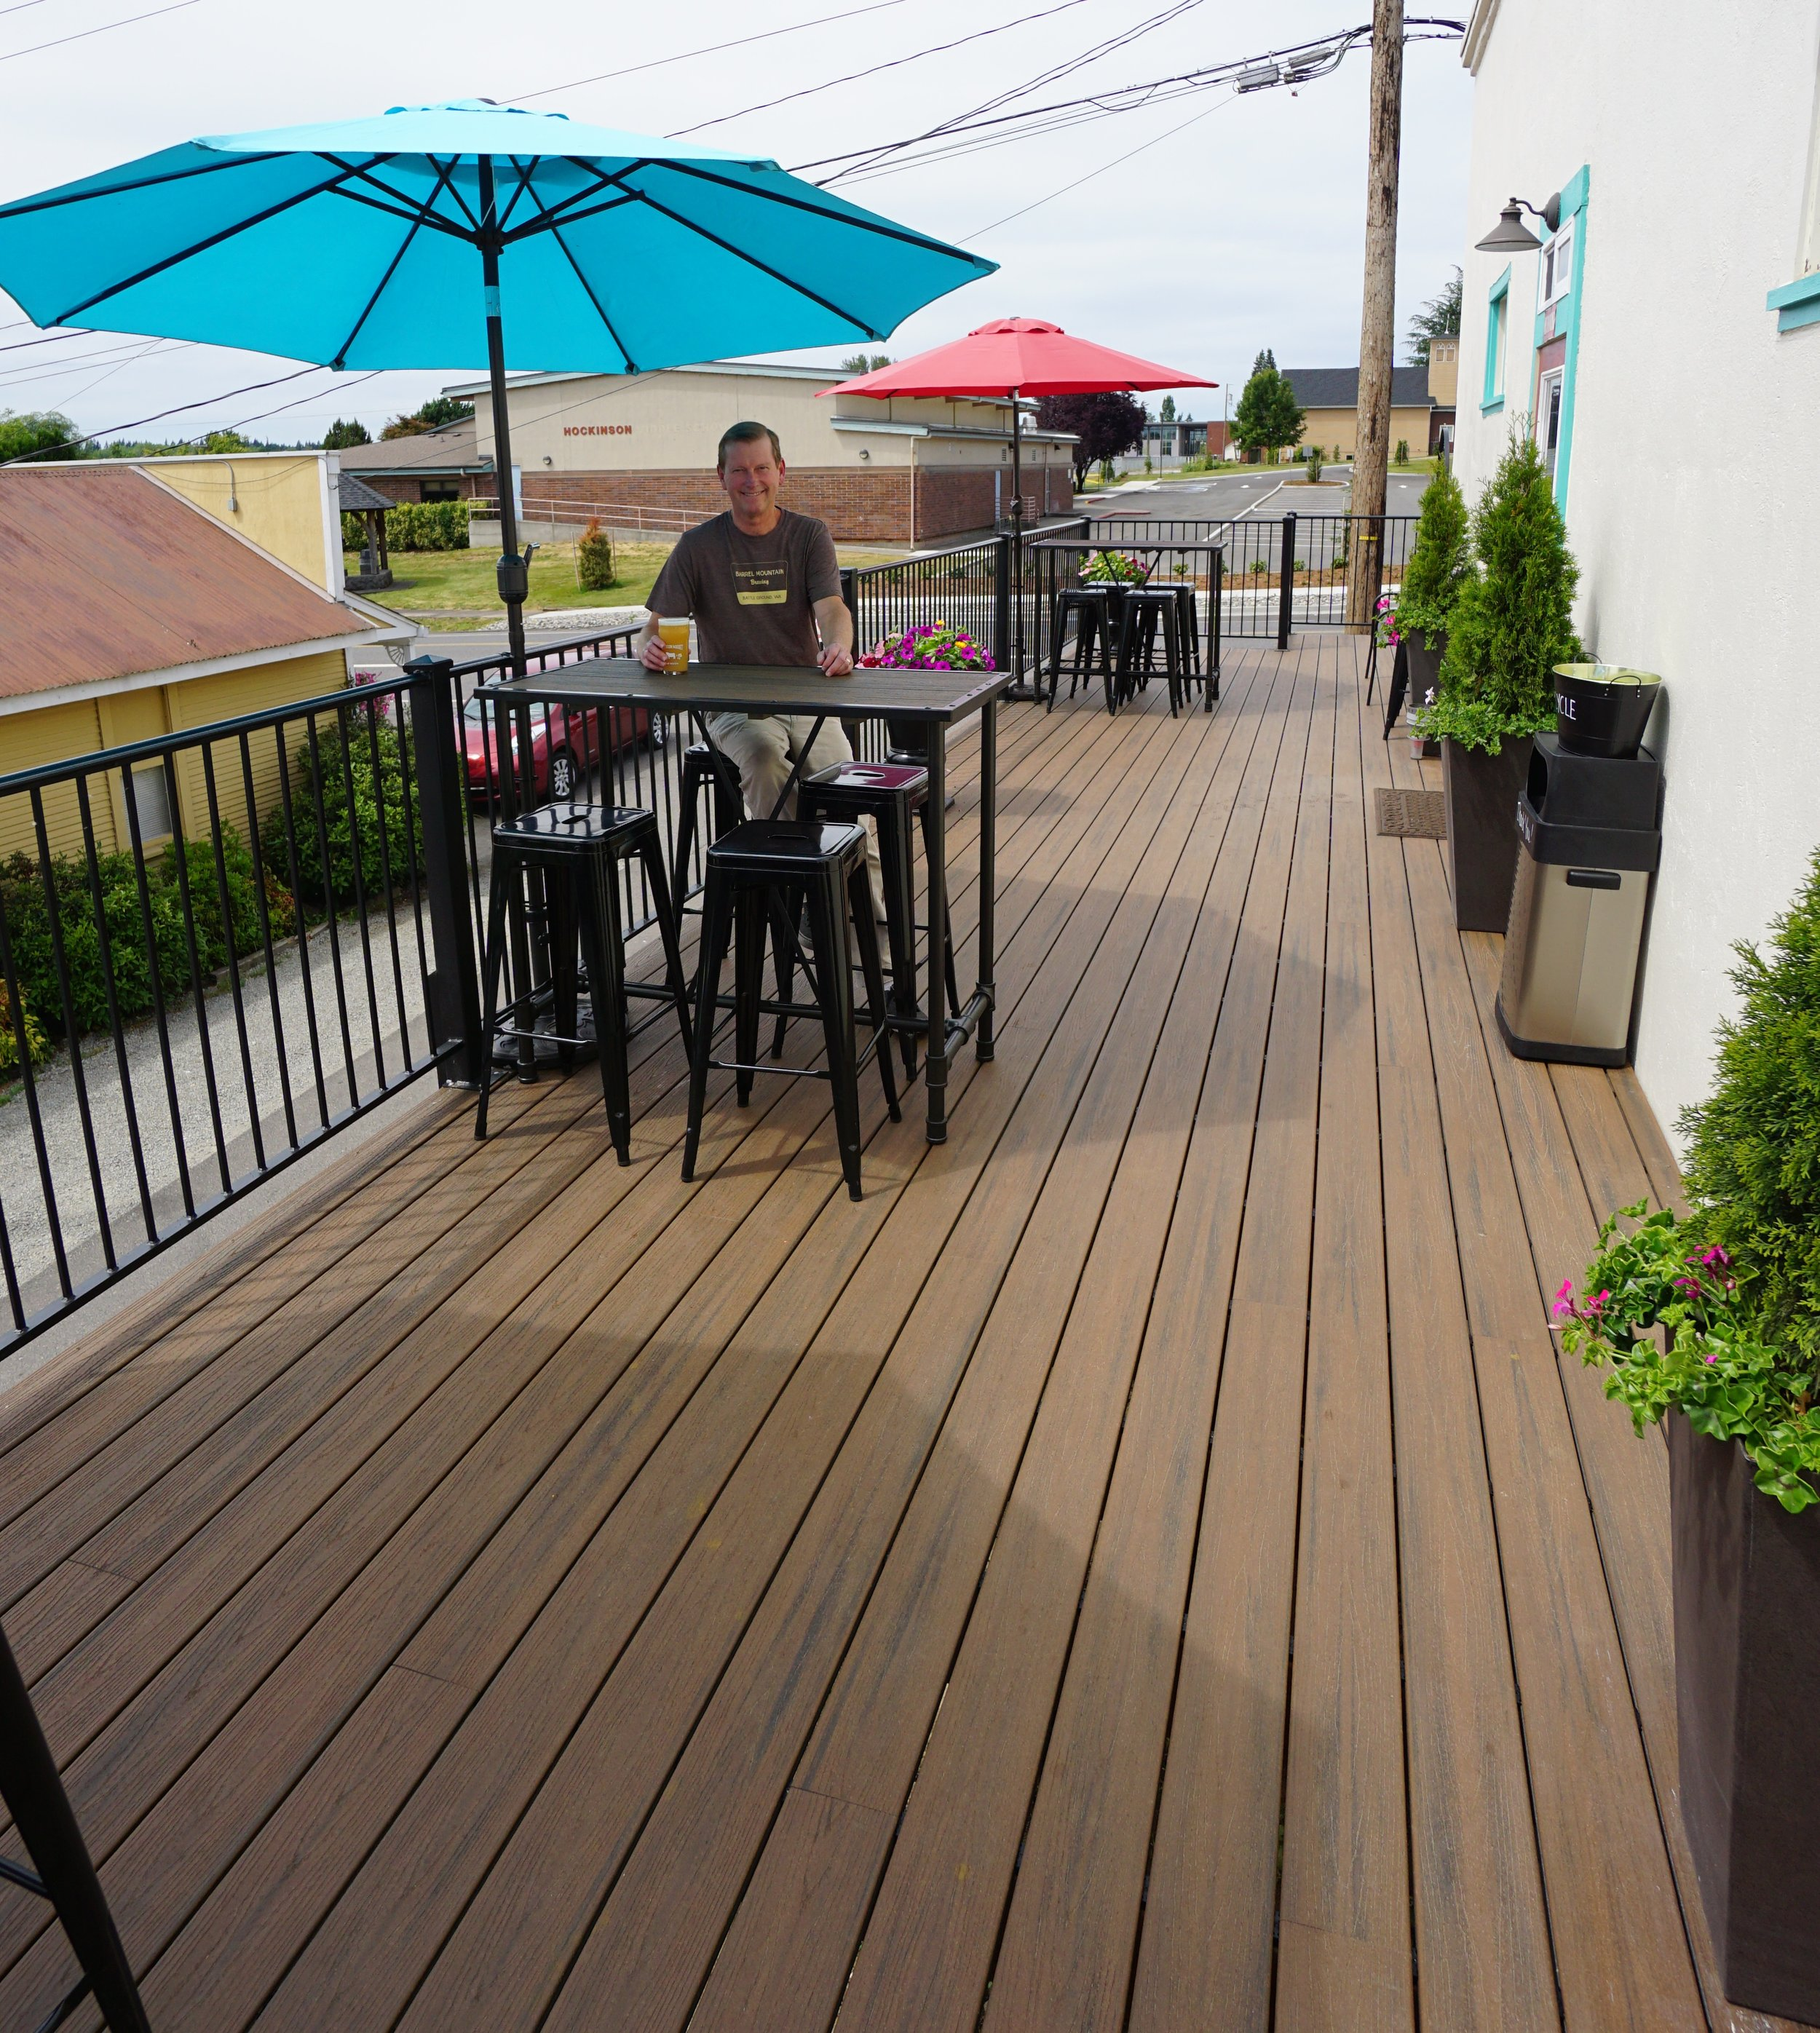 Owner Jim VanNatta sits on the back deck at Hockinson Market. Unveiled at the end of February, the back deck seats 24 comfortably and is surrounded by wrought-iron fencing while potted shrubs soften the building side of the space.Photo by Viki Eierdam